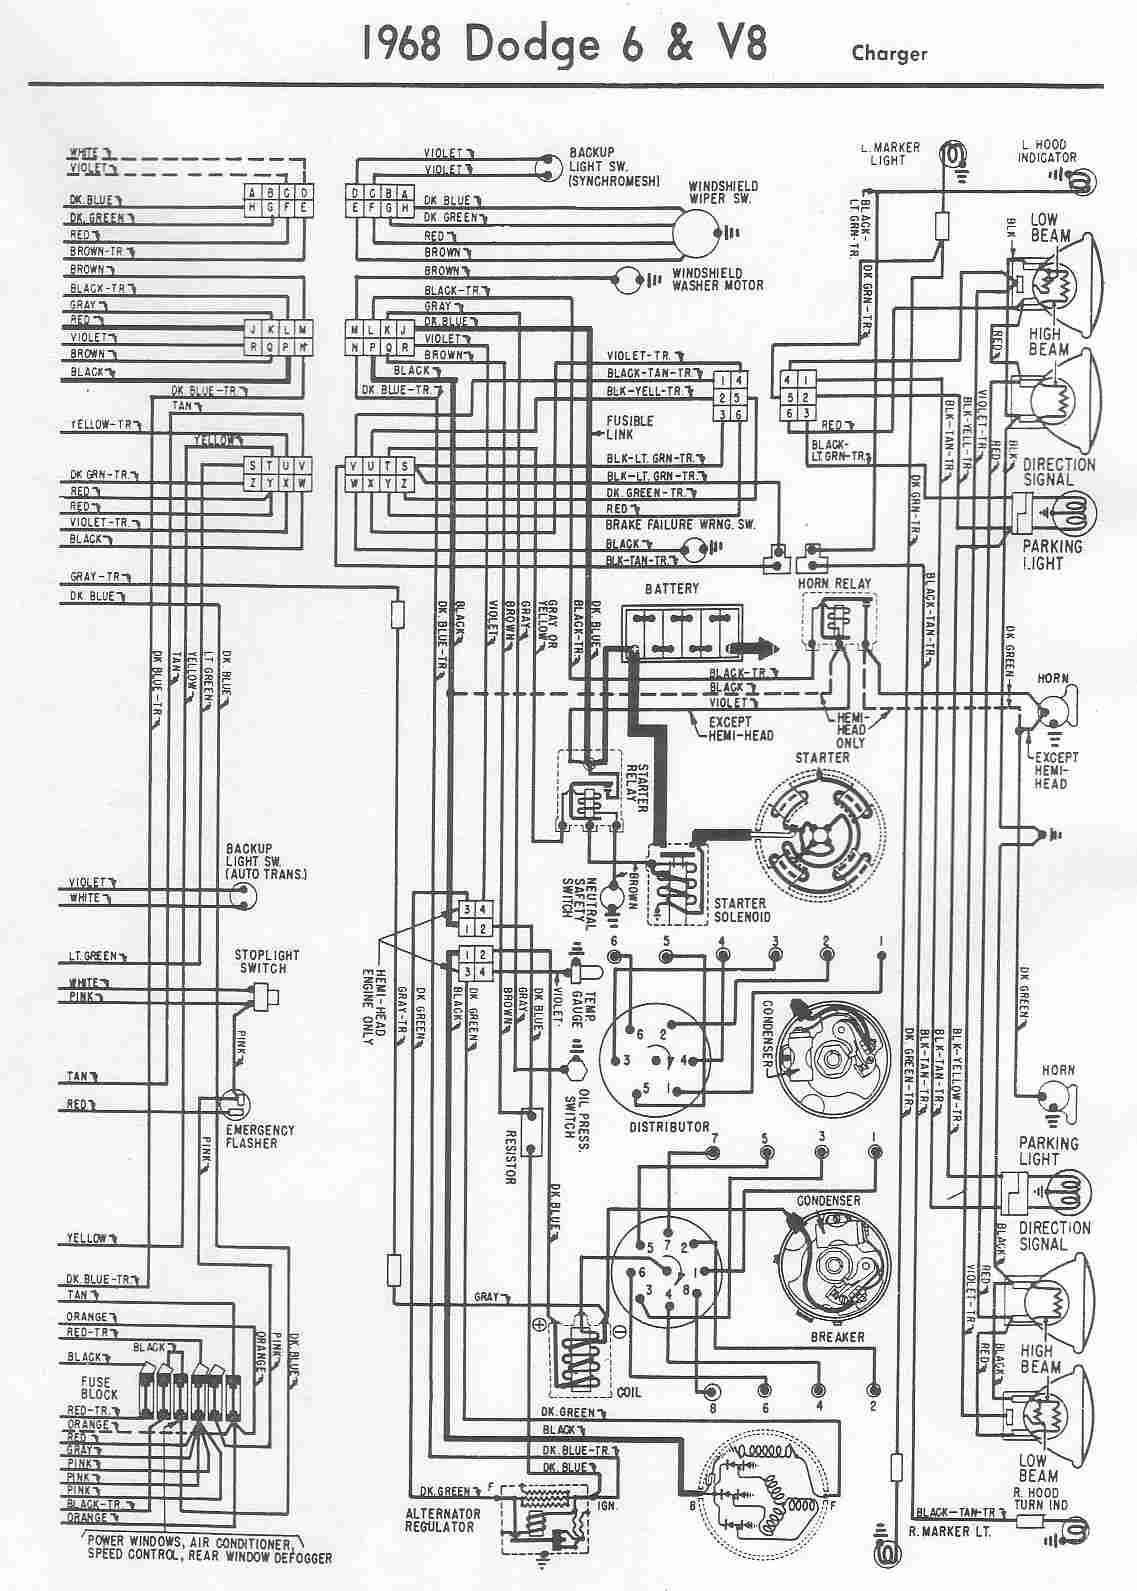 charger electrical wiring diagram of 1968 dodge 6 and v8?t\=1508404771 1970 dodge dart wiring diagram 1970 dodge dart colors \u2022 free 2006 dodge charger engine wiring harness at soozxer.org